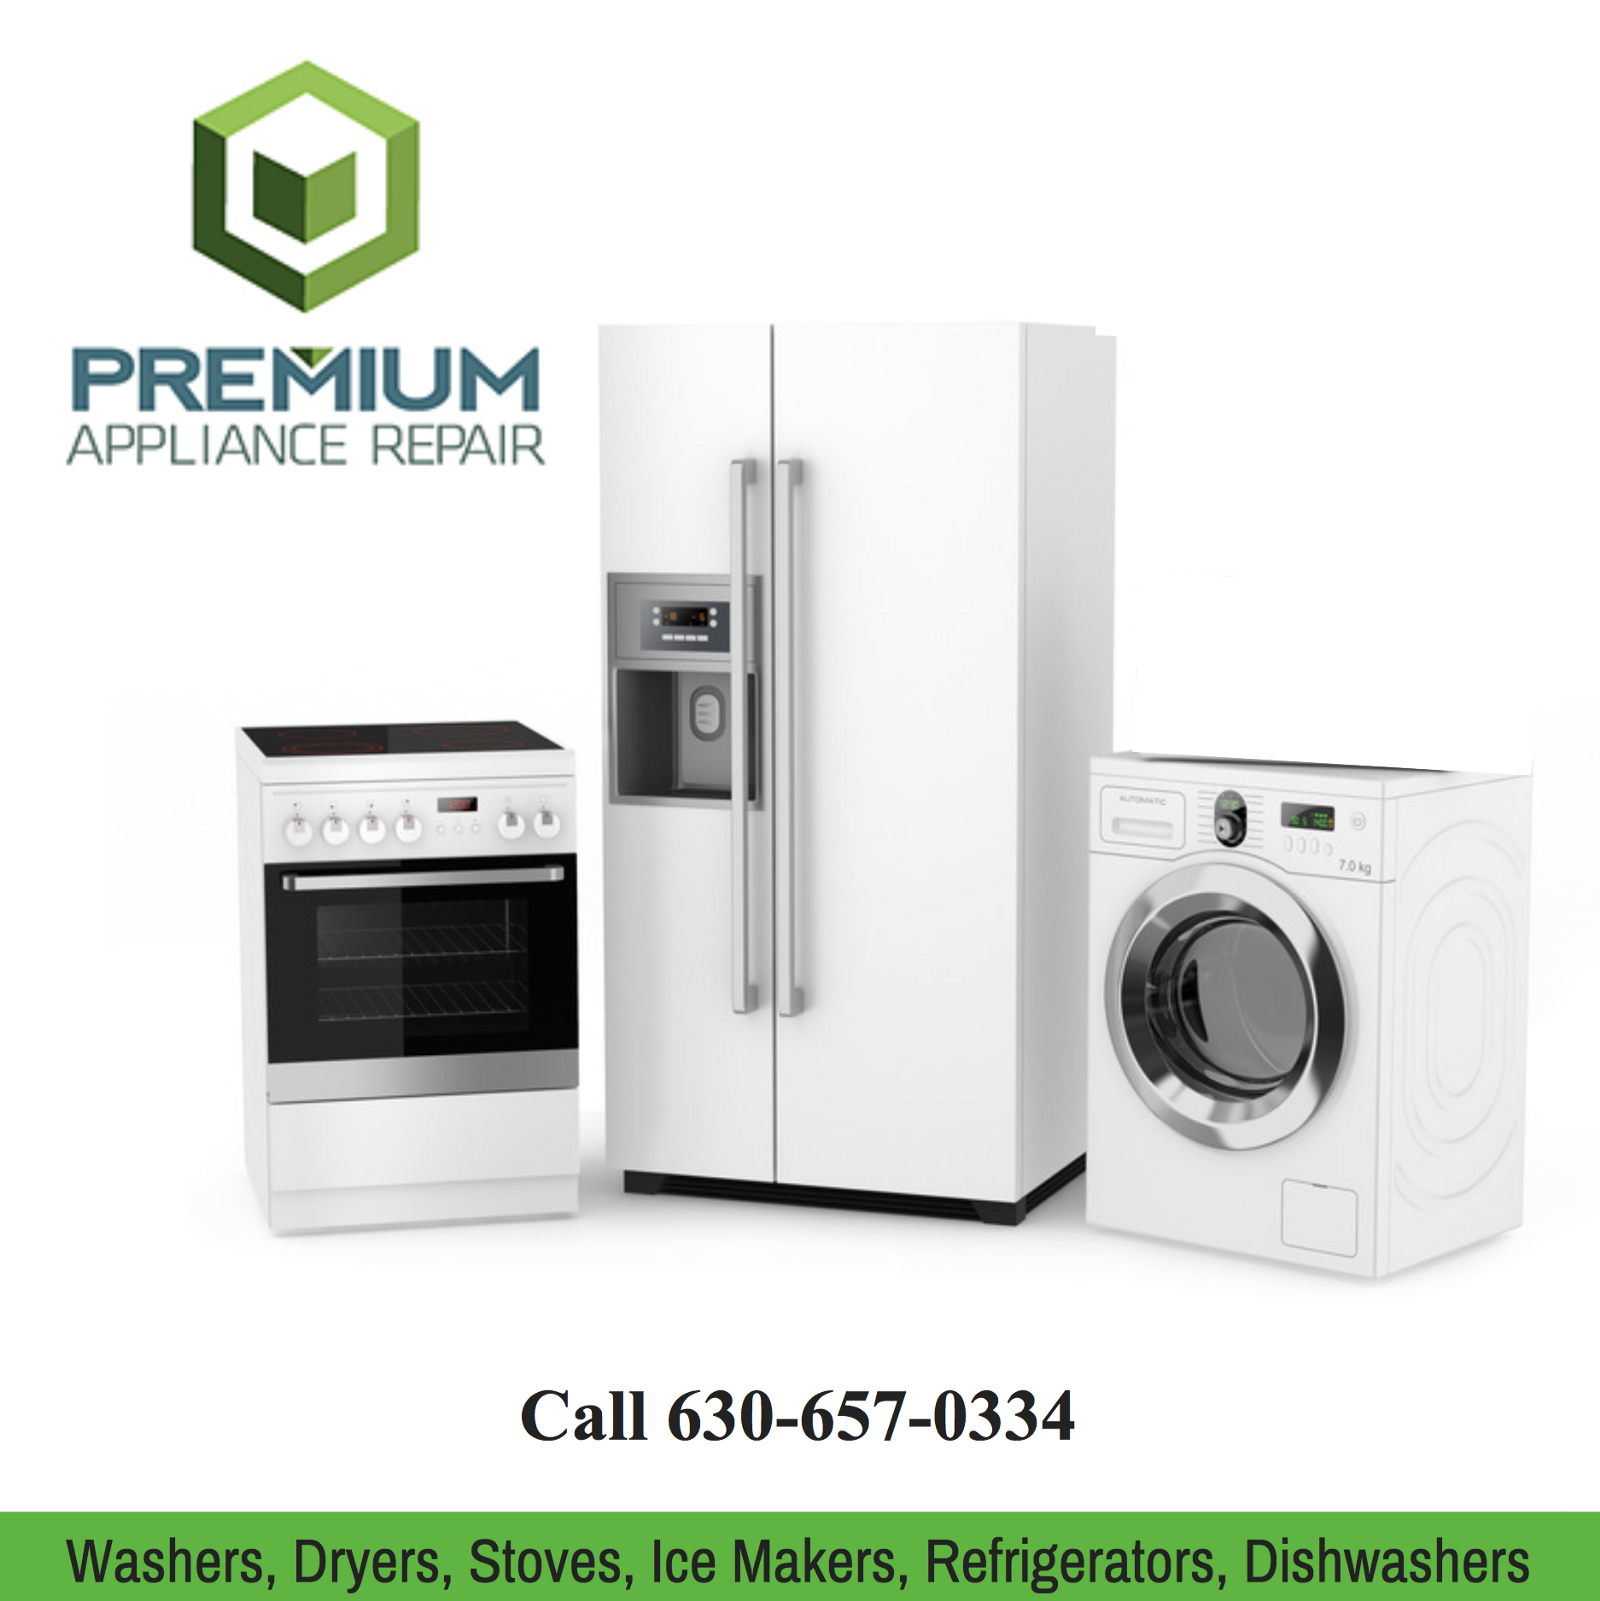 The Path Of Professional Appliance Repair Company Is Better & Safer Than DIY  Route!